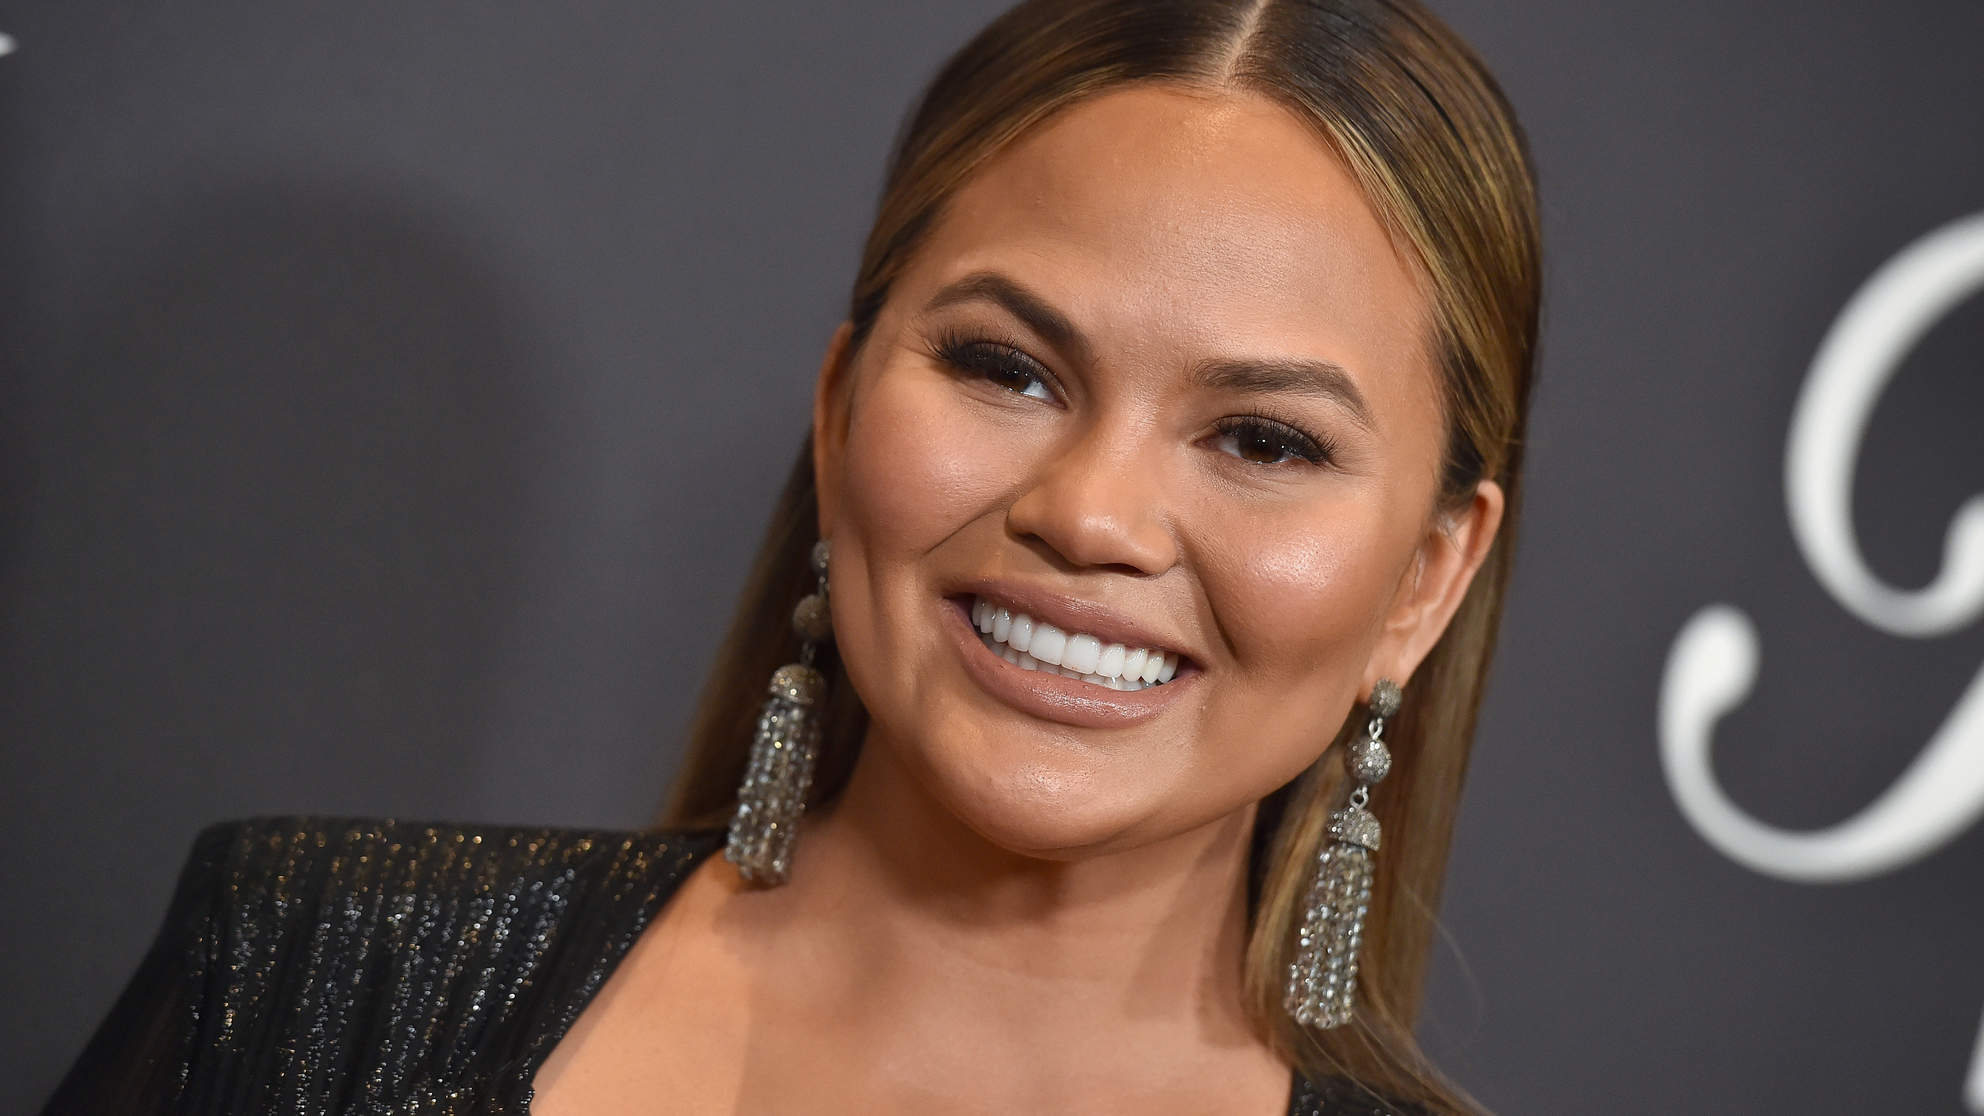 Chrissy Teigen Is 'Very Jealous' About Missing the Met Gala But Posts Beauty Tips from Her Couch